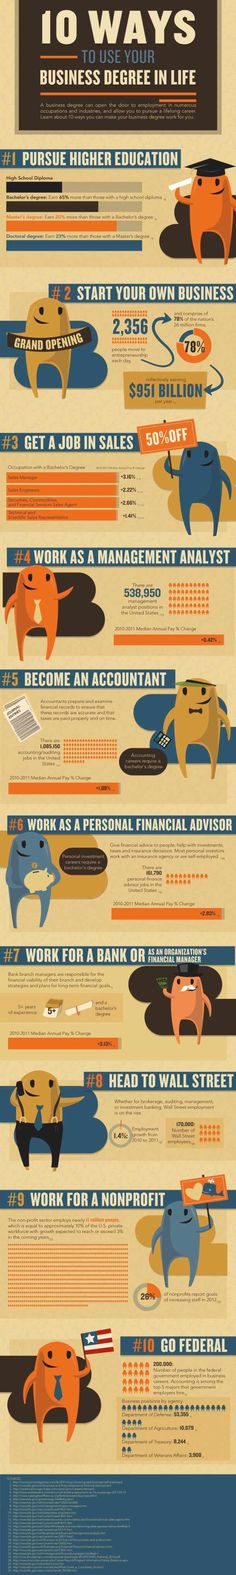 10 Ways to Use Your Business Degree in Life[INFOGRAPHIC] #infograph #business #realife